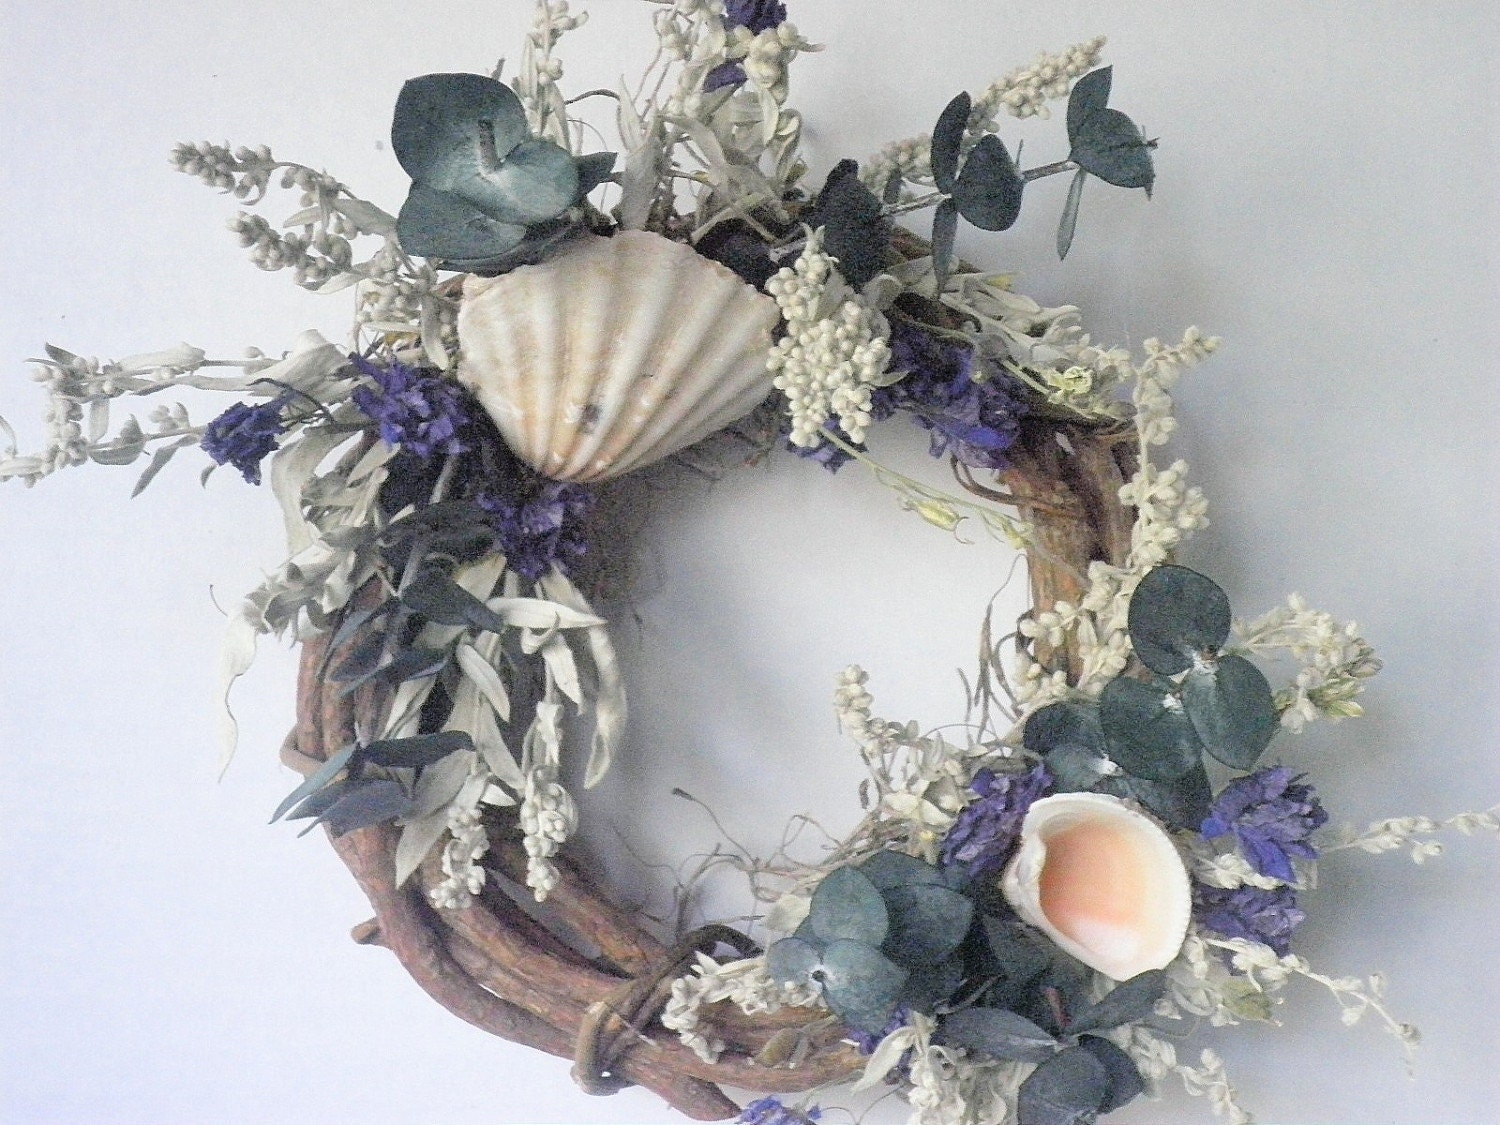 Grapevine with Scallop Shell and Dried Flowers